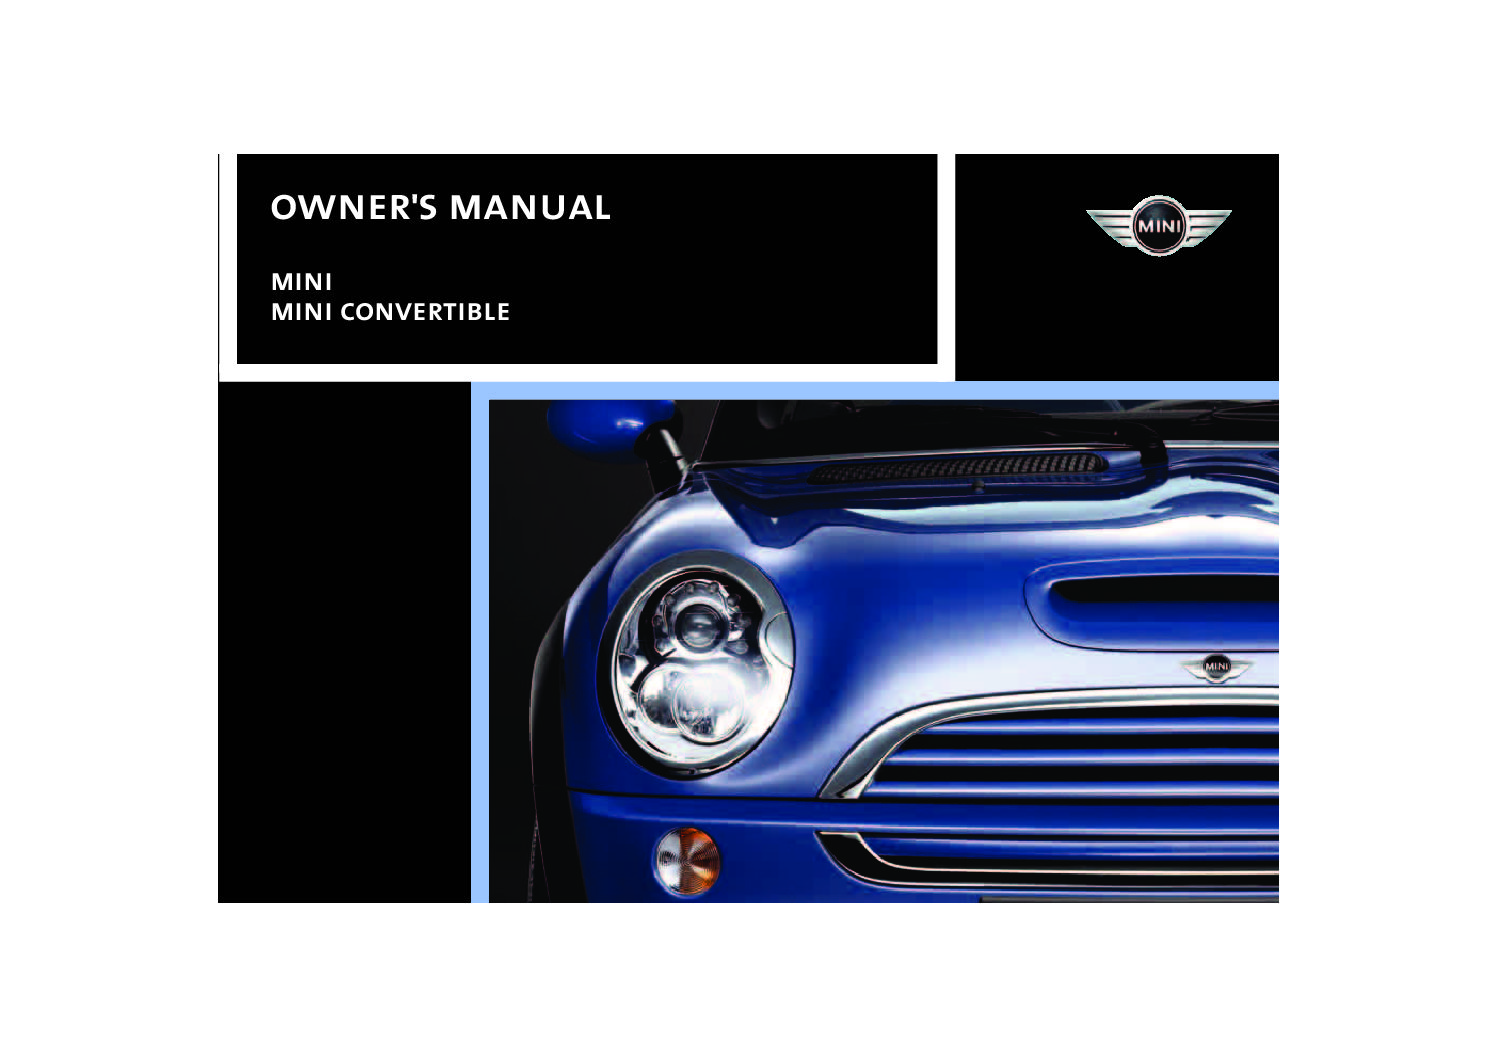 2008 mini cooper convertible owners manual just give me the damn rh justgivemethedamnmanual com mini cooper owners manual 2015 mini cooper owners manual 2012